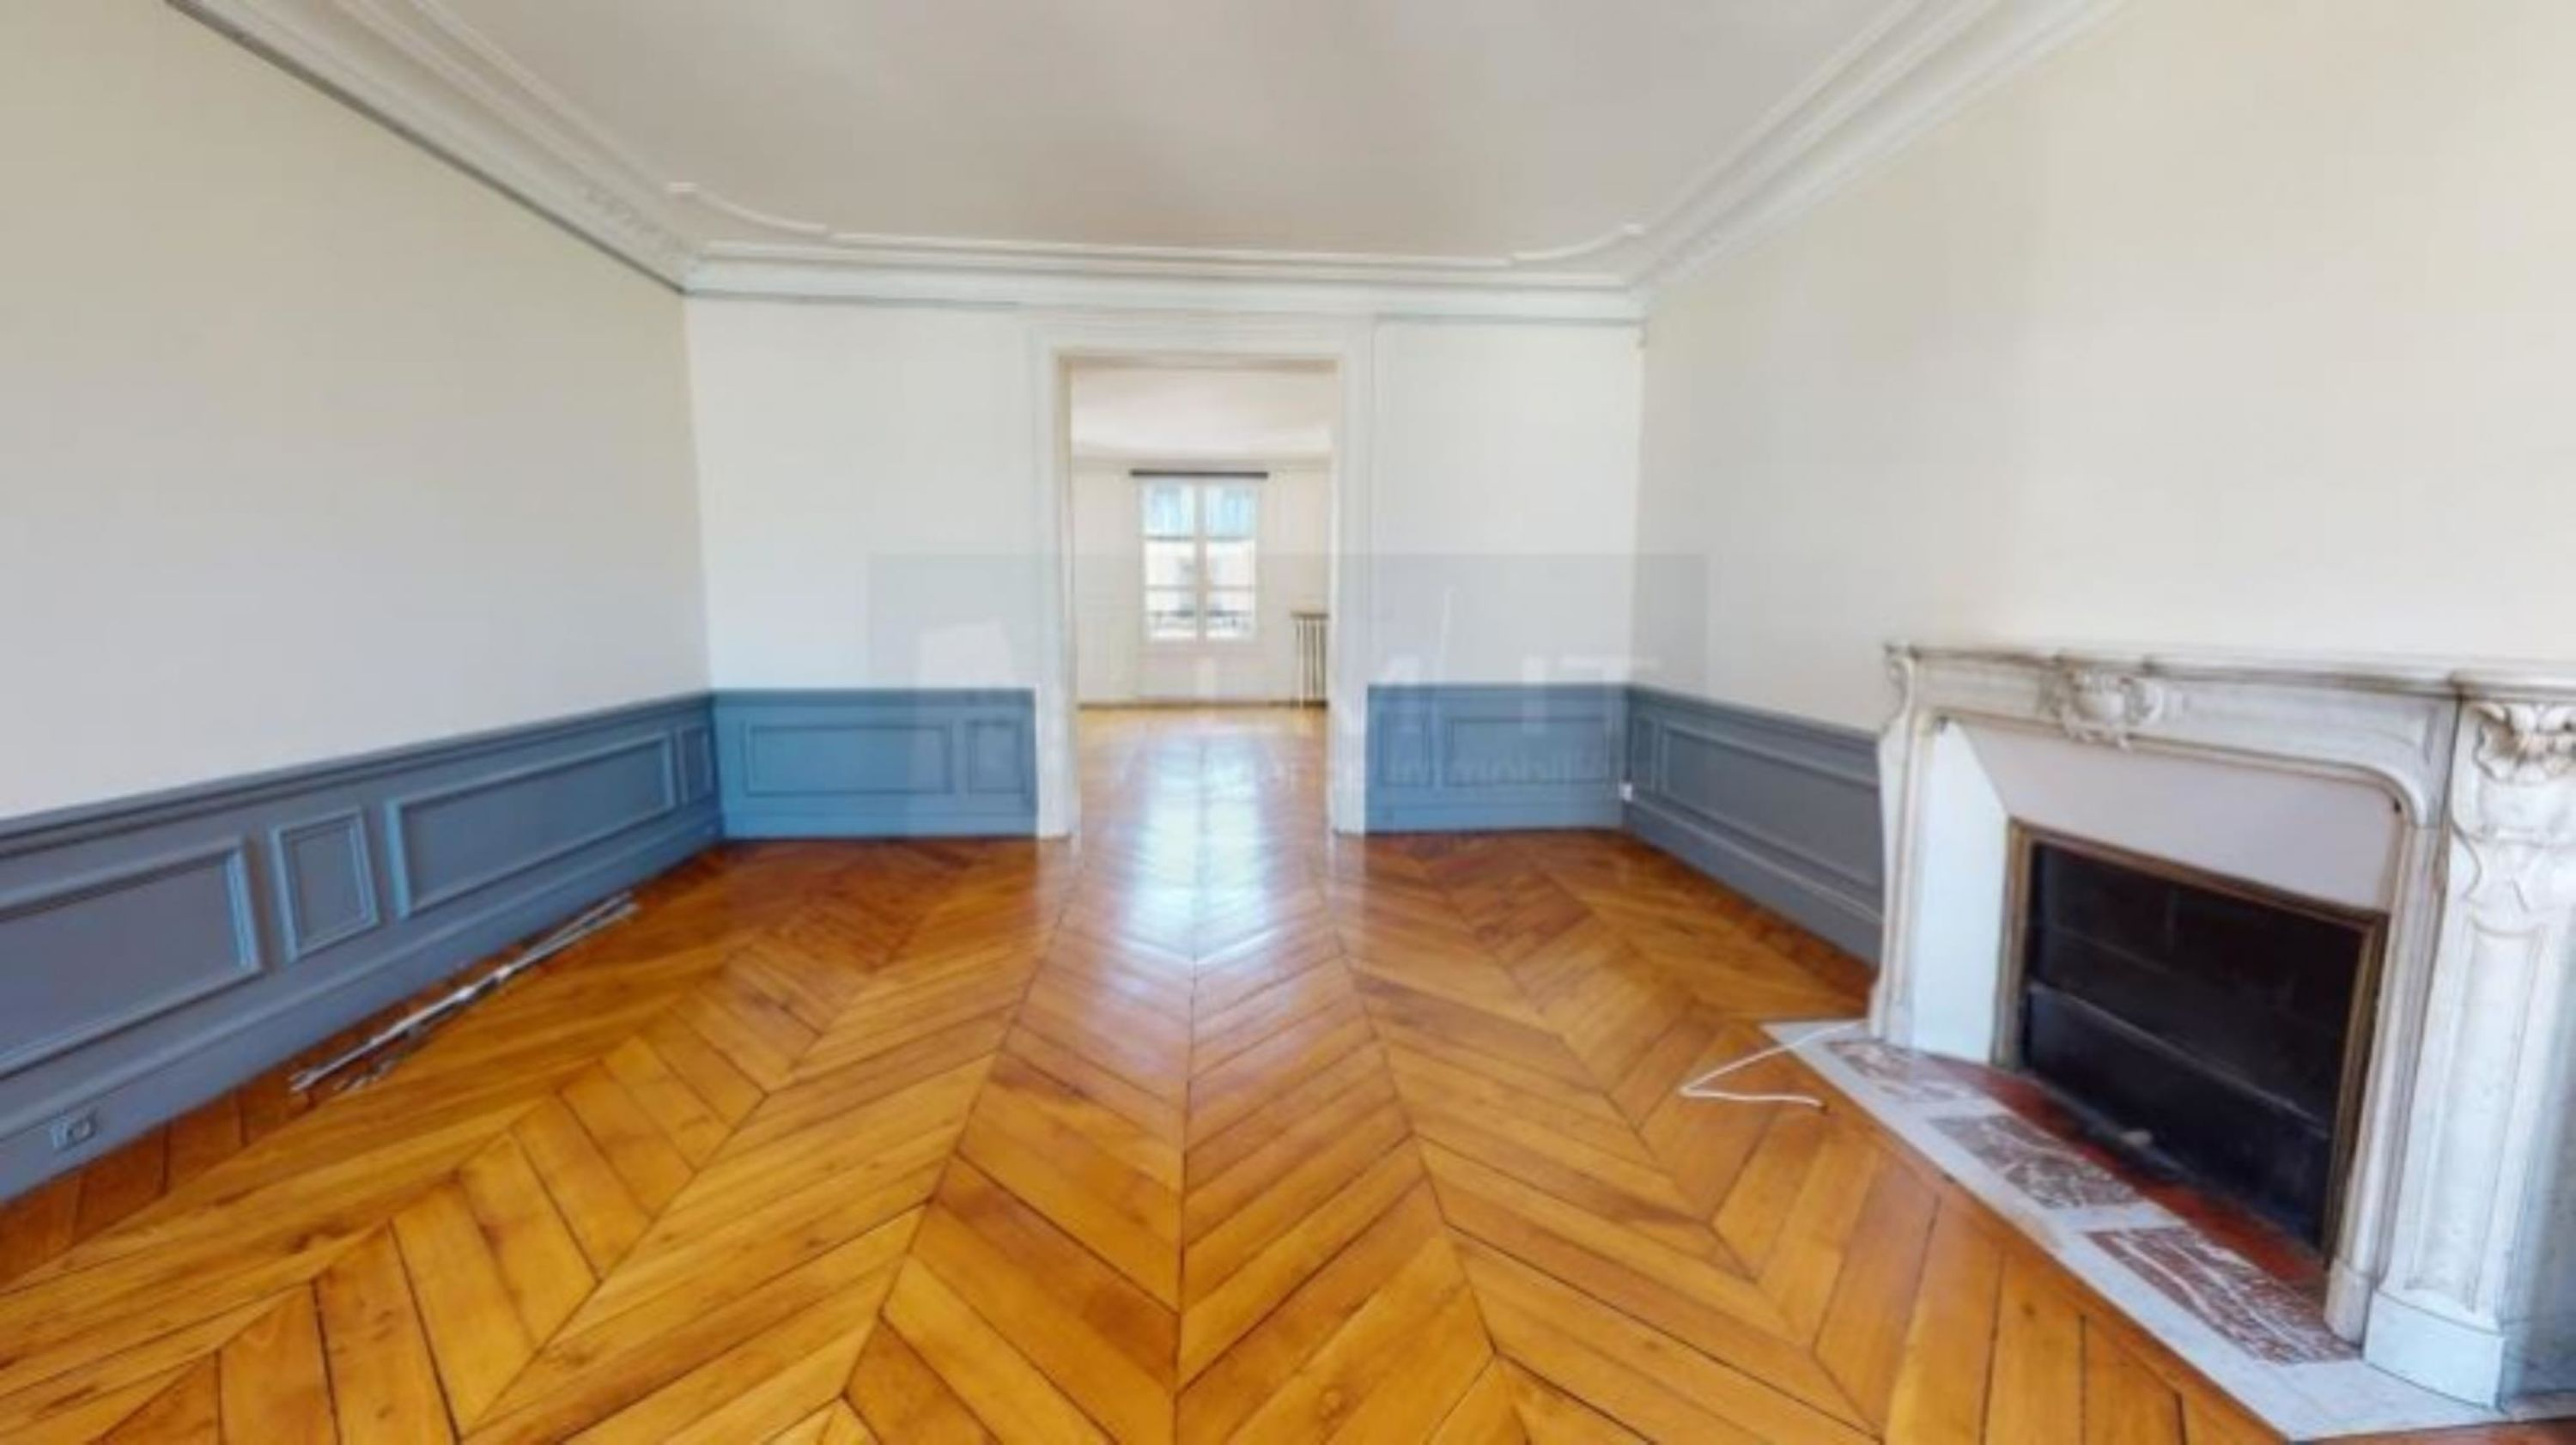 agence immobilière sevres 92 le chesnay 78 achat vente location appartement maison immobilier LMHT ANF TGVOSOXS